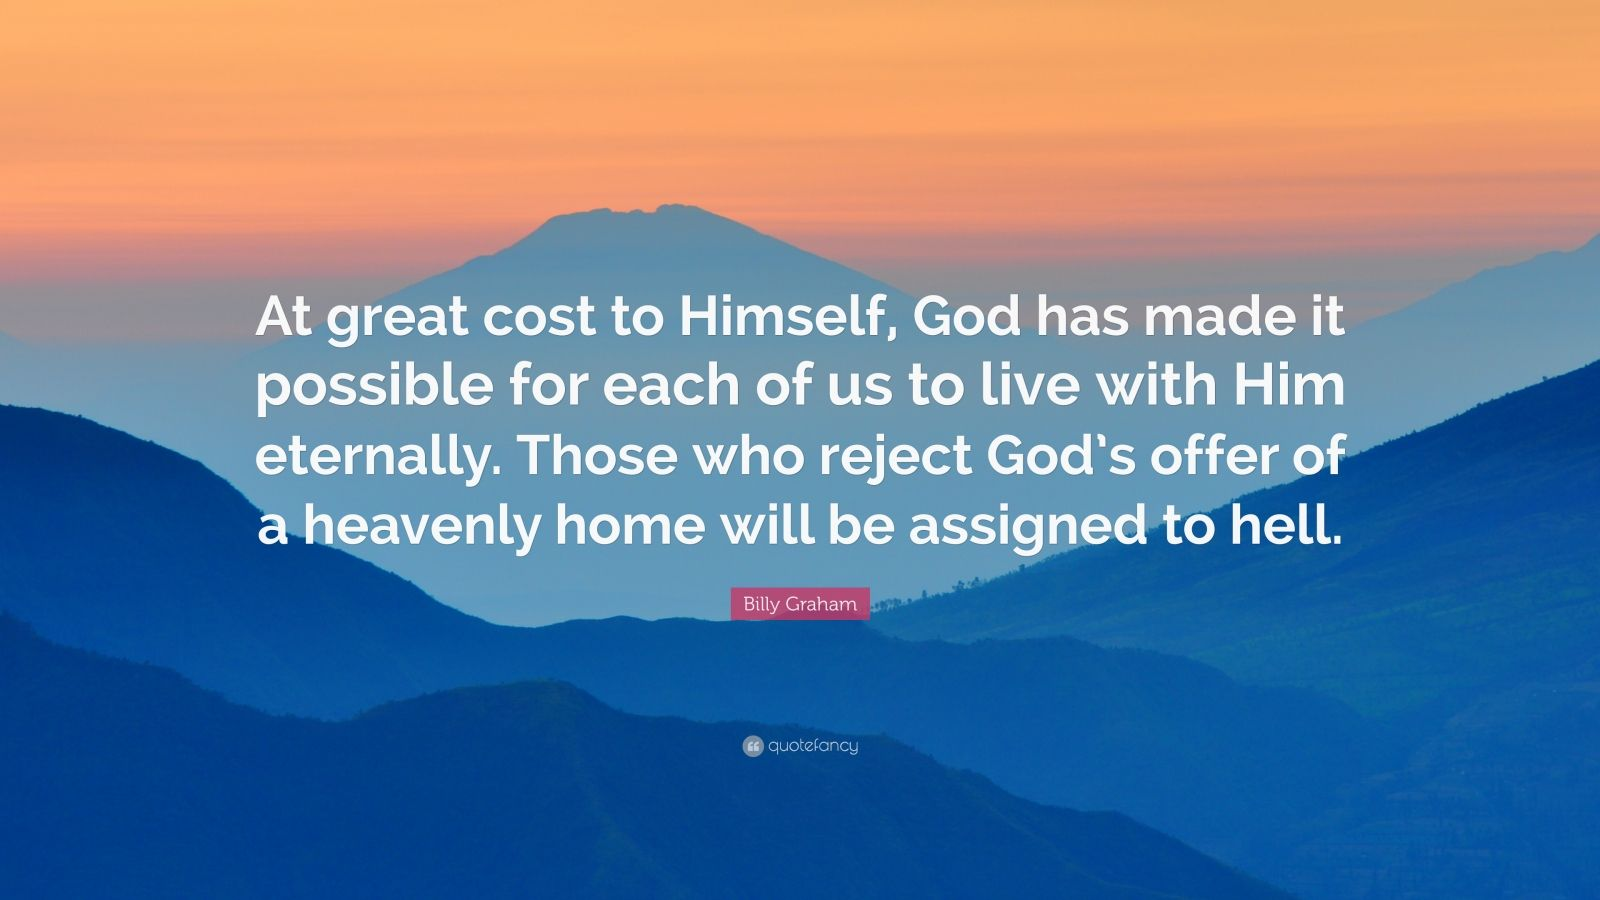 "Billy Graham Quote: ""At great cost to Himself, God has made it possible for each of us to live with Him eternally. Those who reject God's offer of a heavenly home will be assigned to hell."""